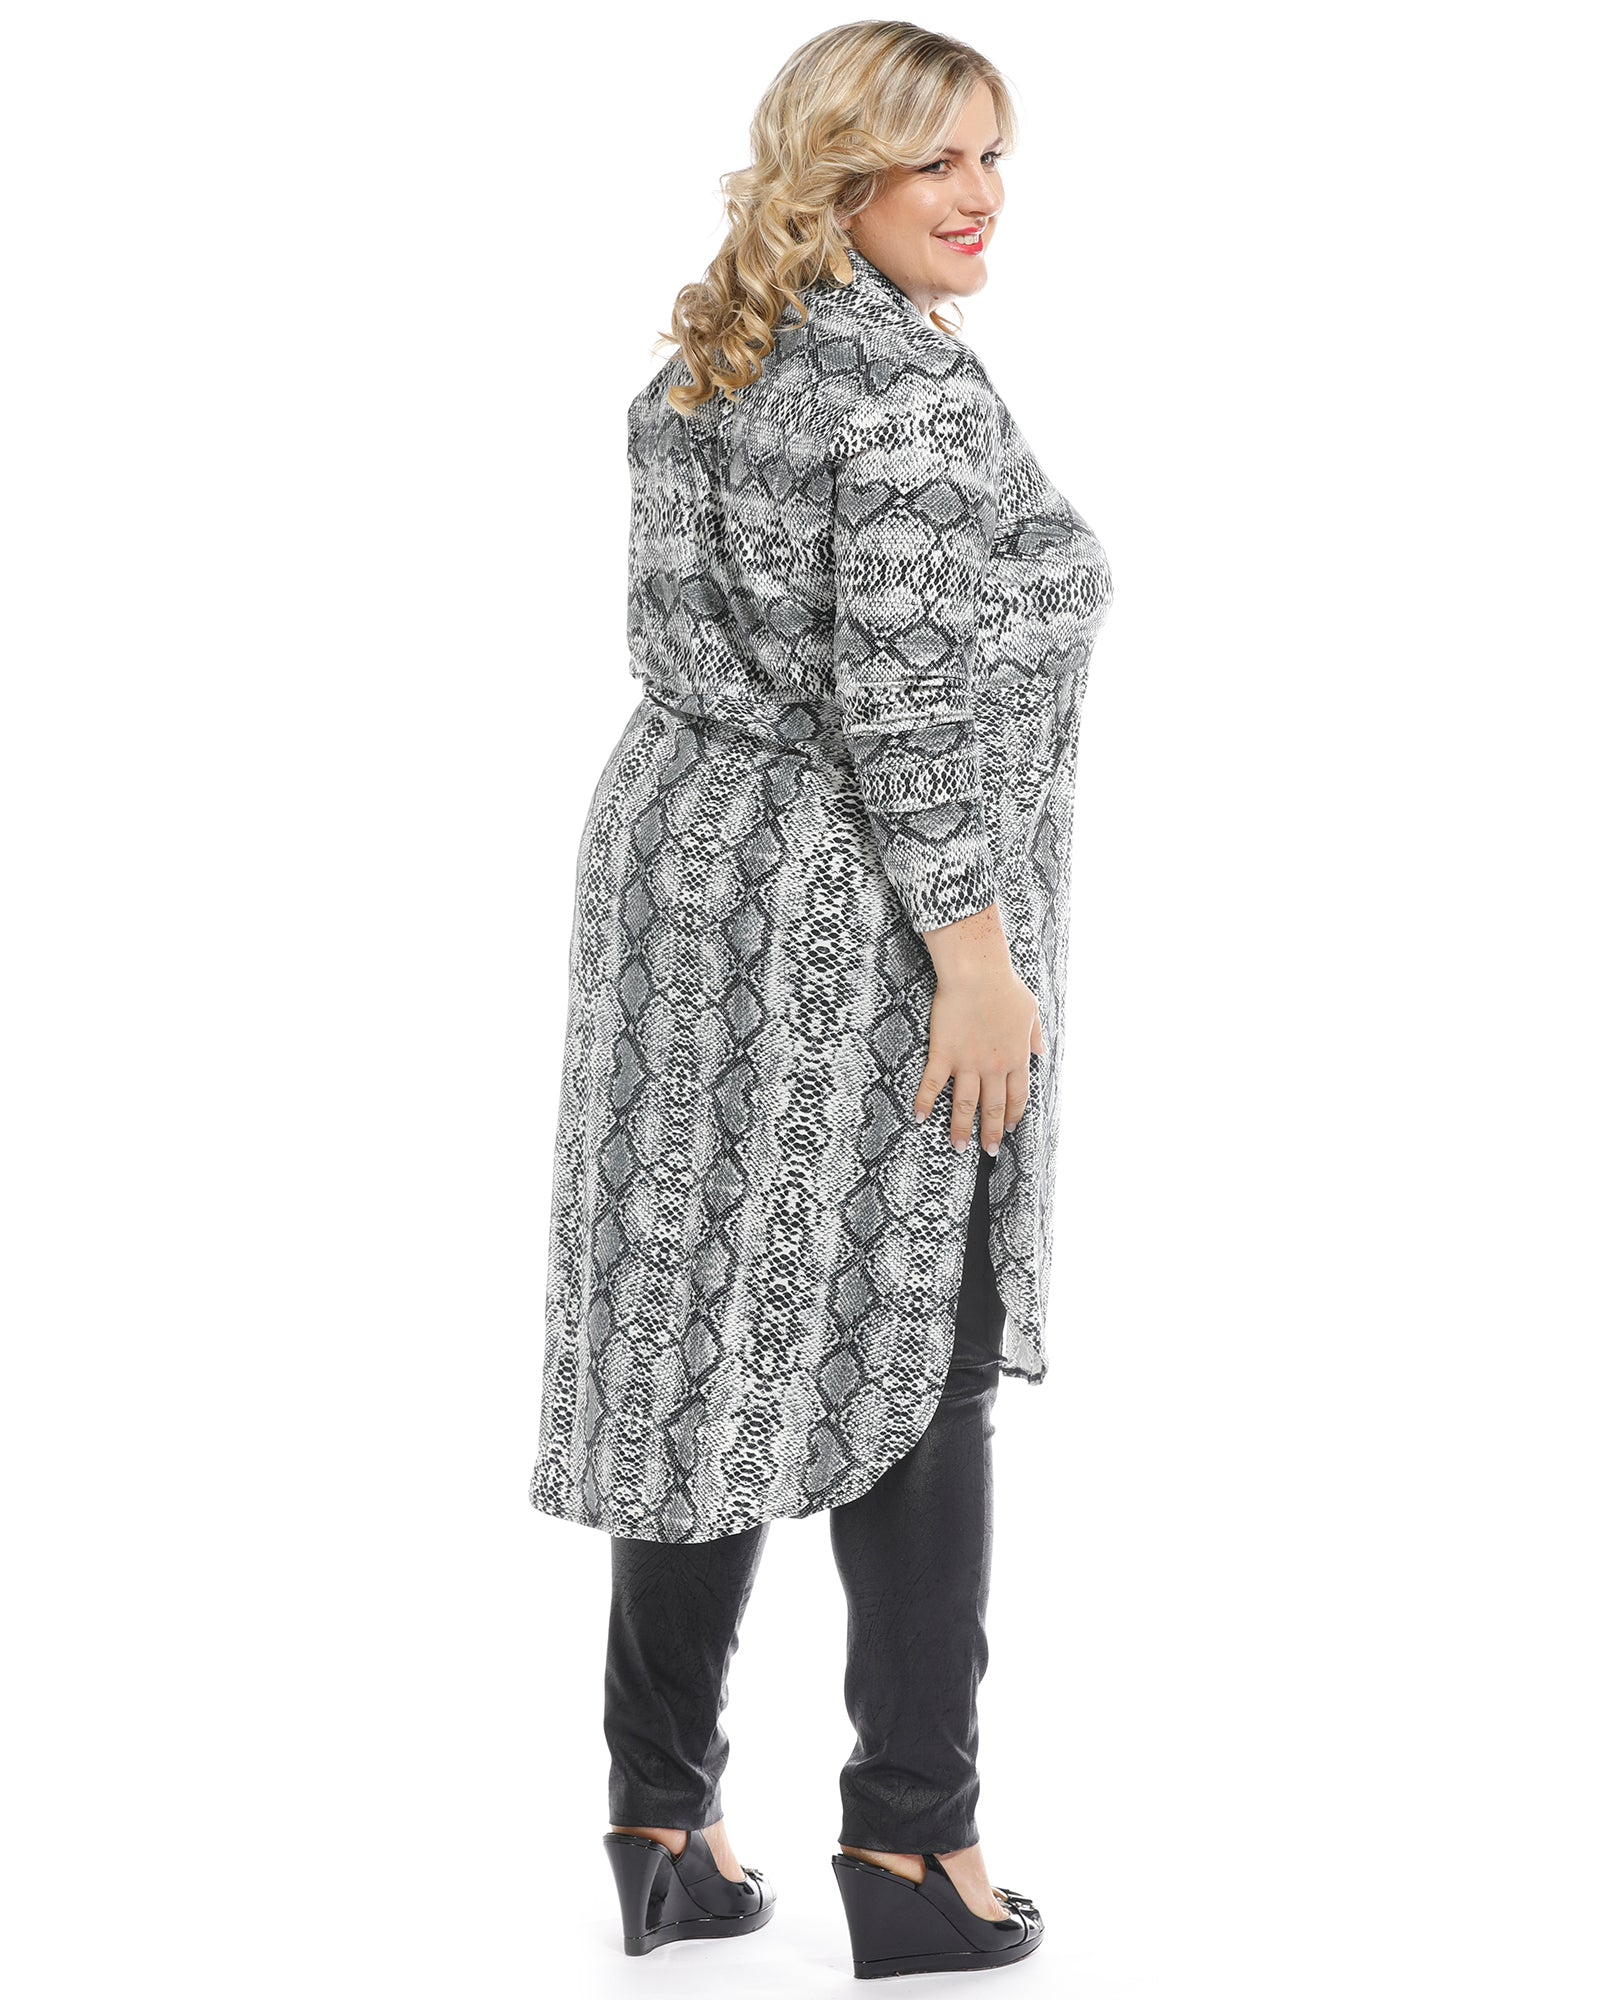 Animal Winter Dress - Silver- Size 18, 20 & 24 ONLY